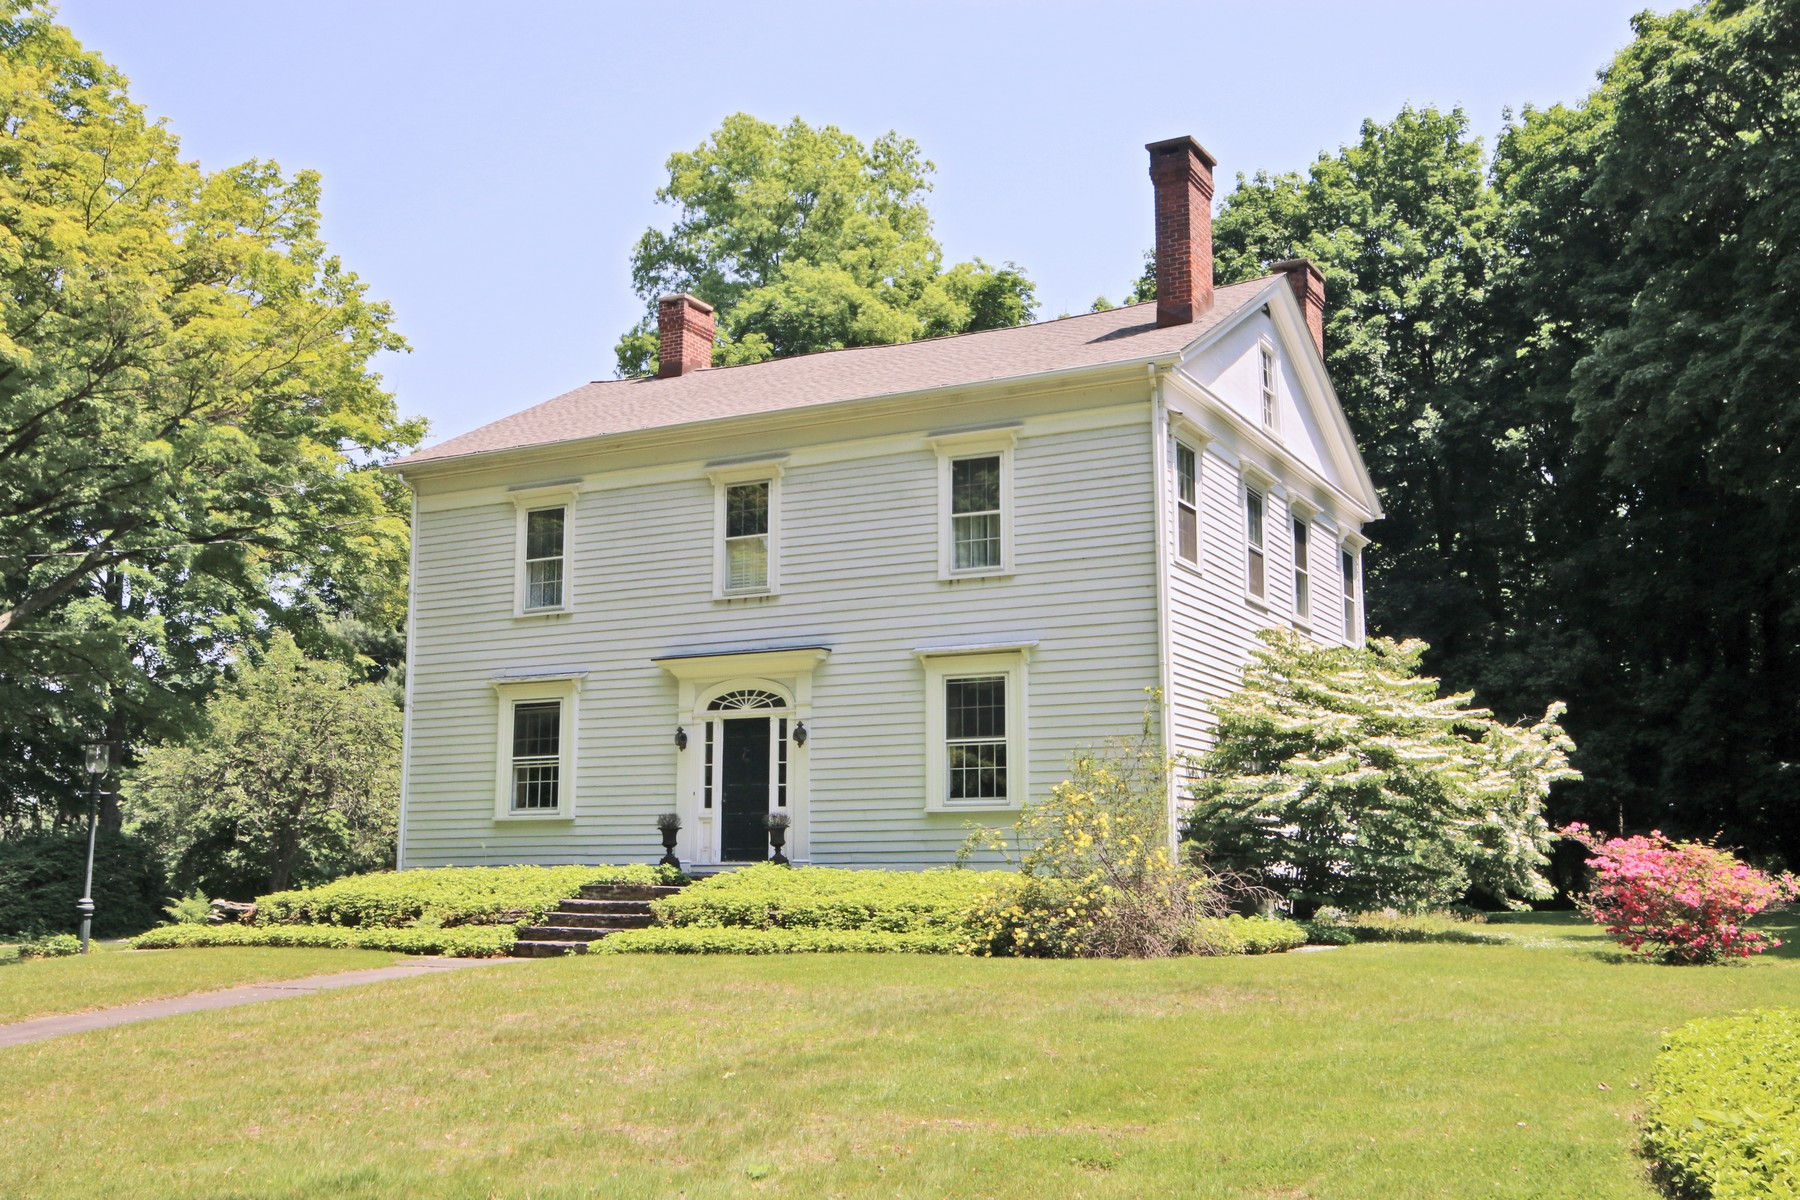 Single Family Home for Sale at HISTORIC SASCO HILL ESTATE 209 Sasco Hill Road, Fairfield, CT Fairfield, Connecticut 06824 United States